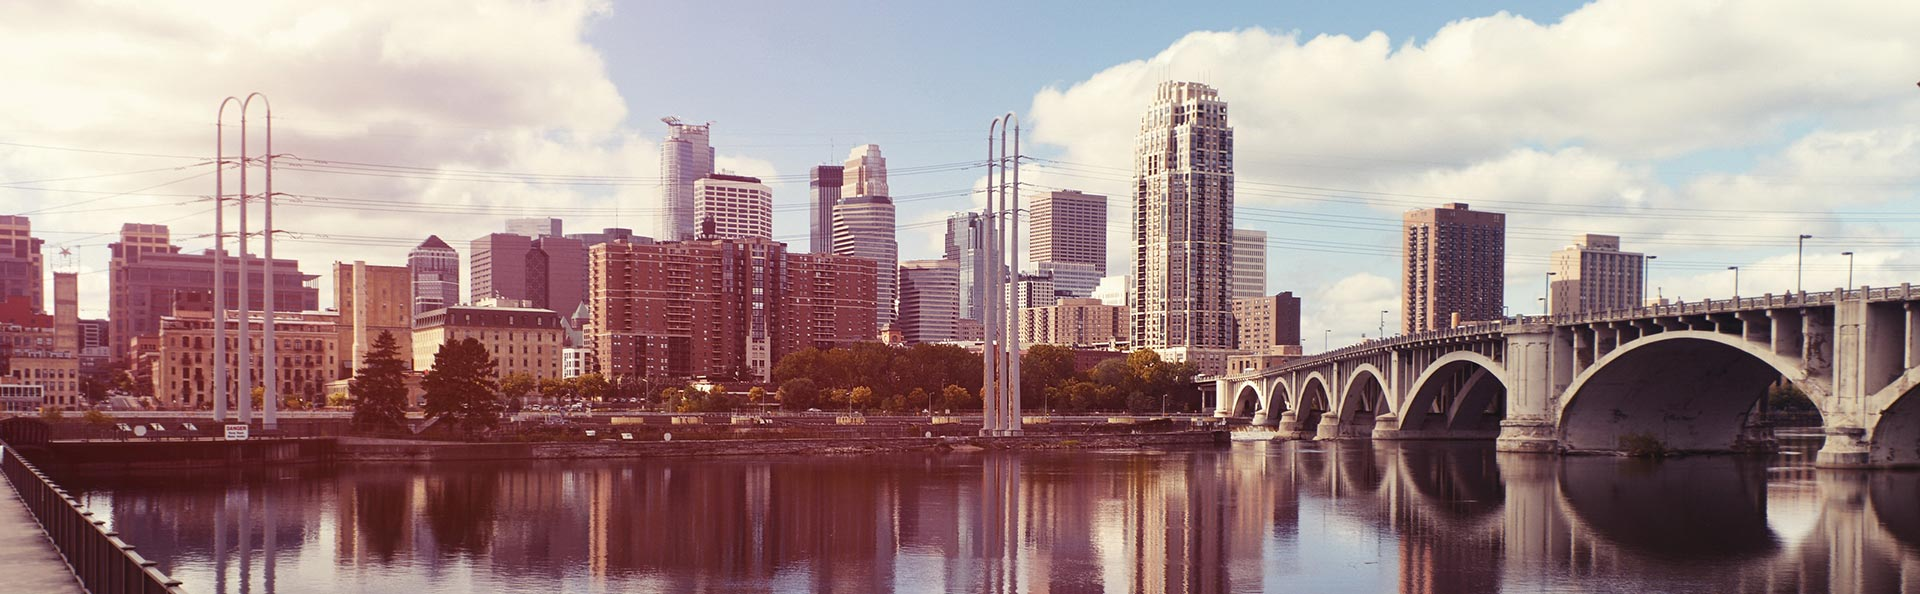 Minneapolis, Minnesota. Janitorial services provider.